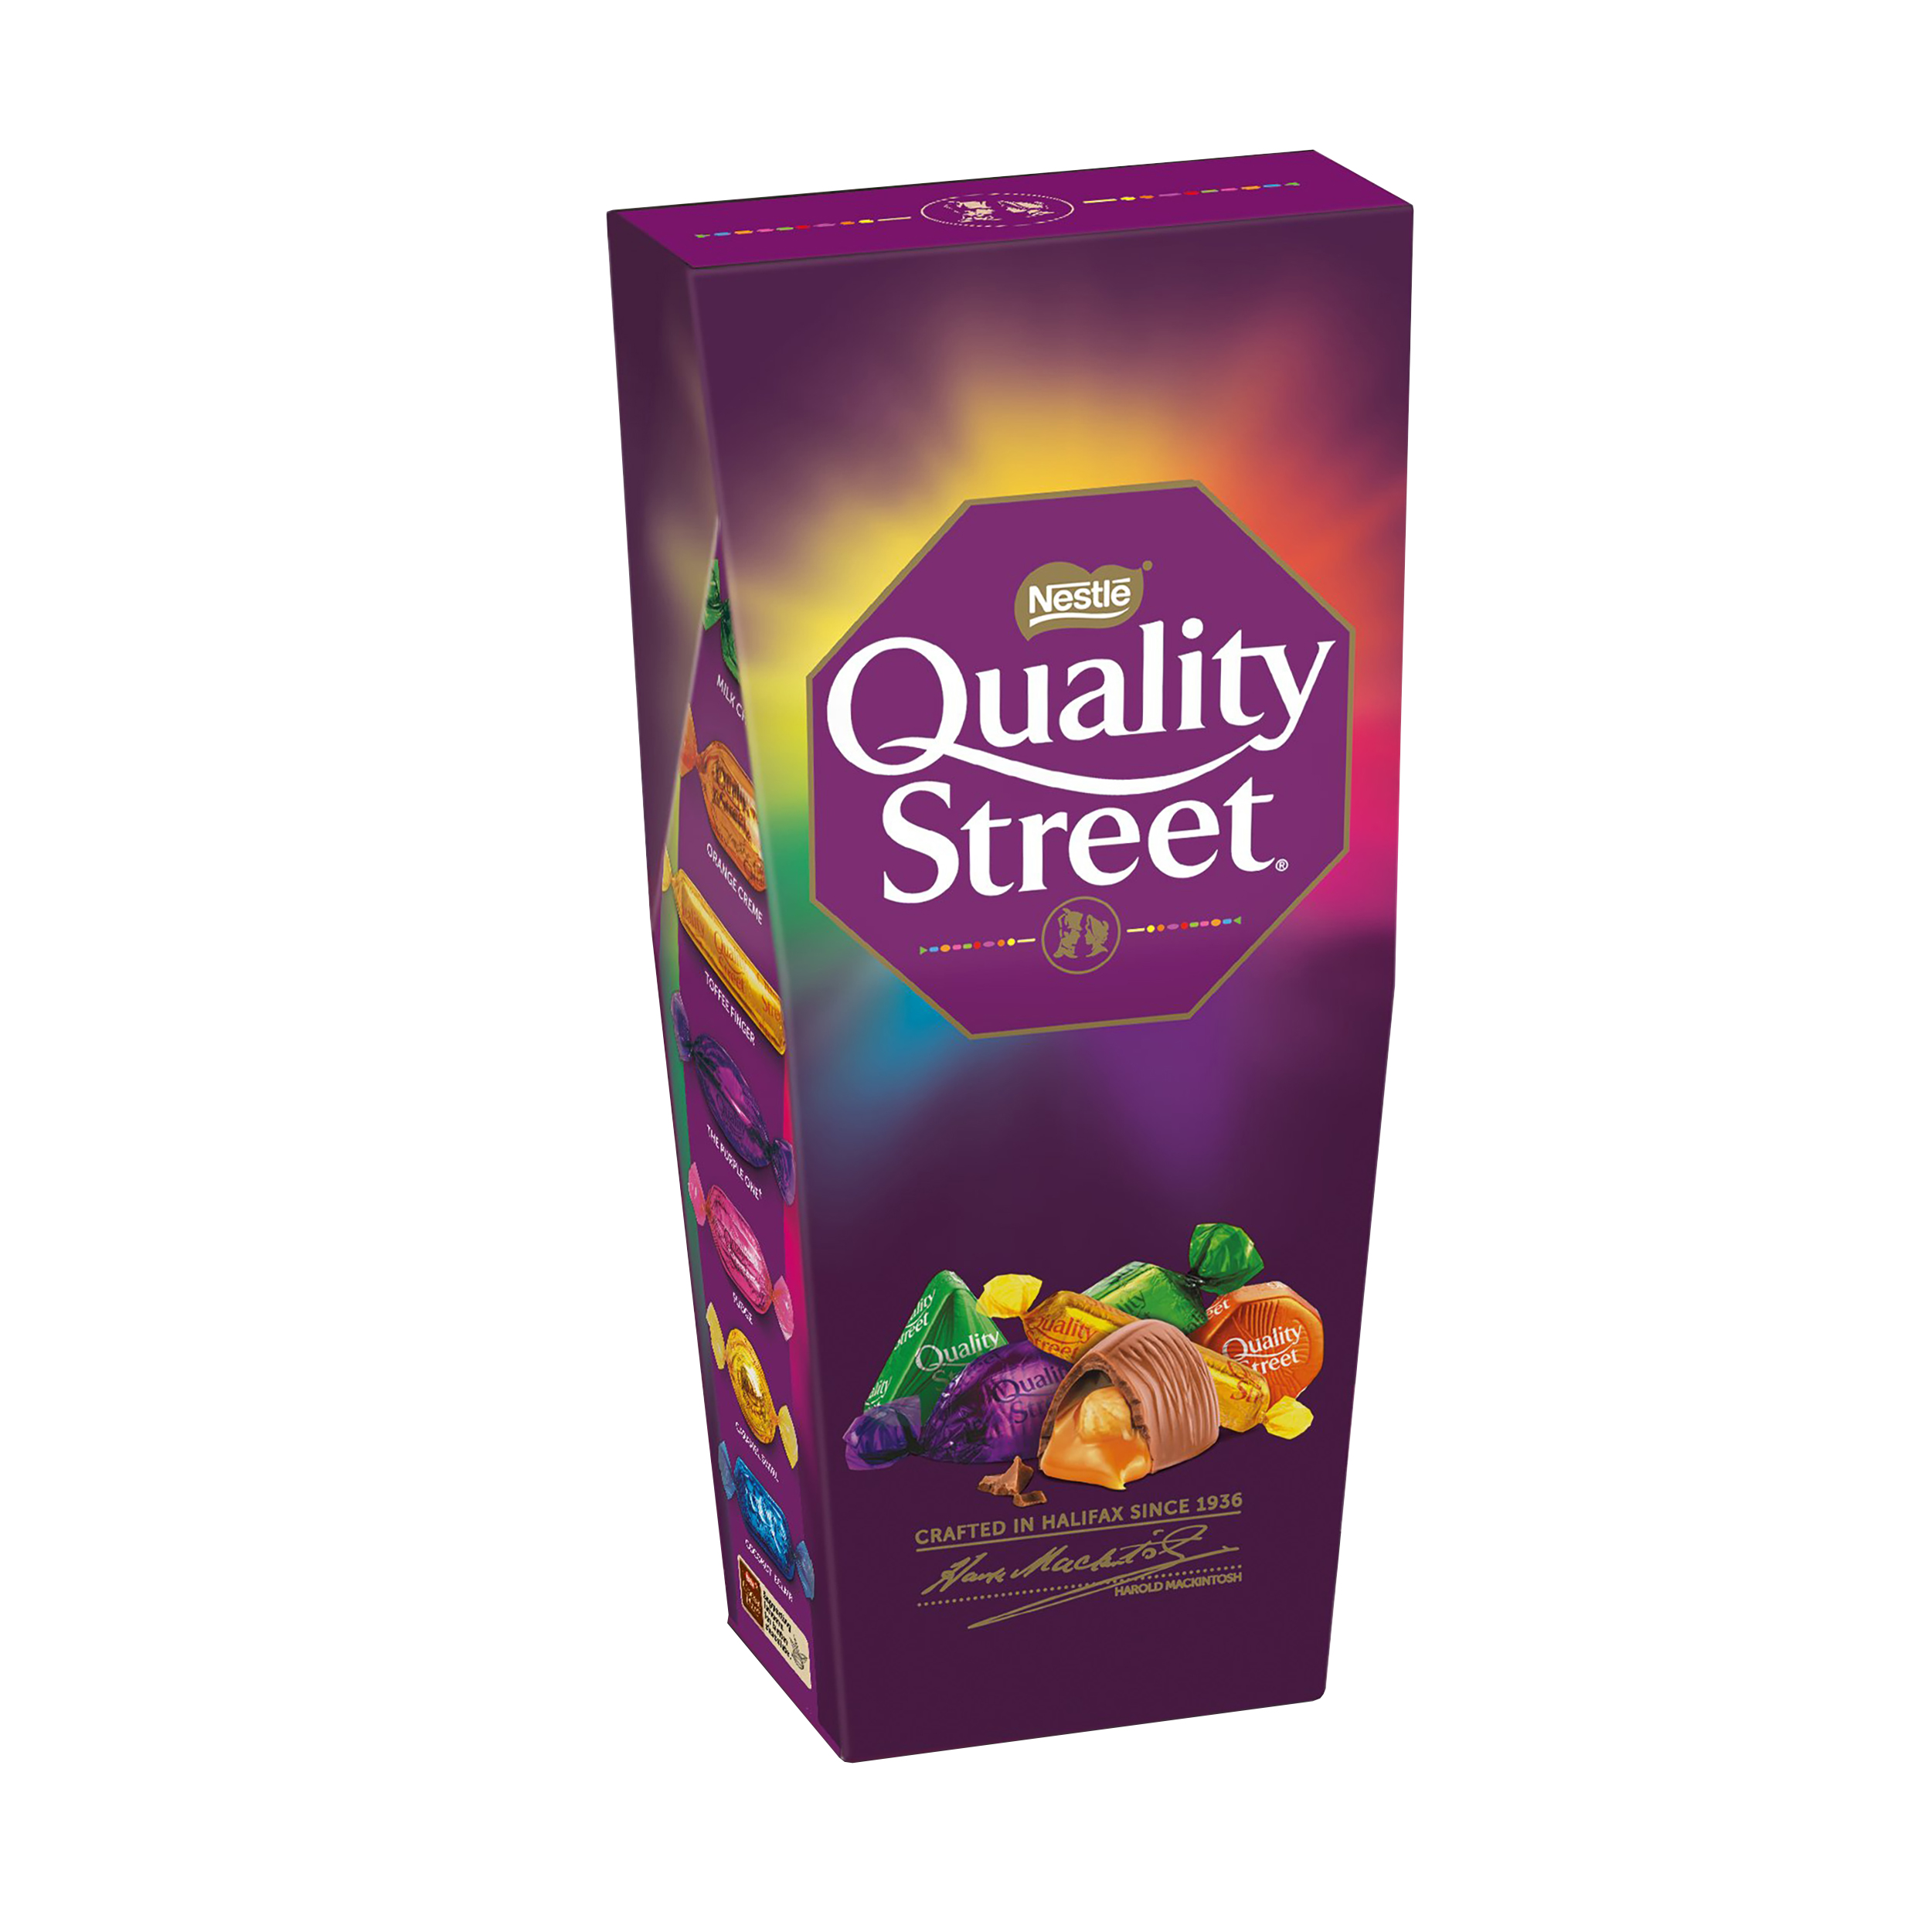 Chocolate or chocolate substitute candy Nestle Quality Street Assorted Chocolates Box 240g Ref 12394661